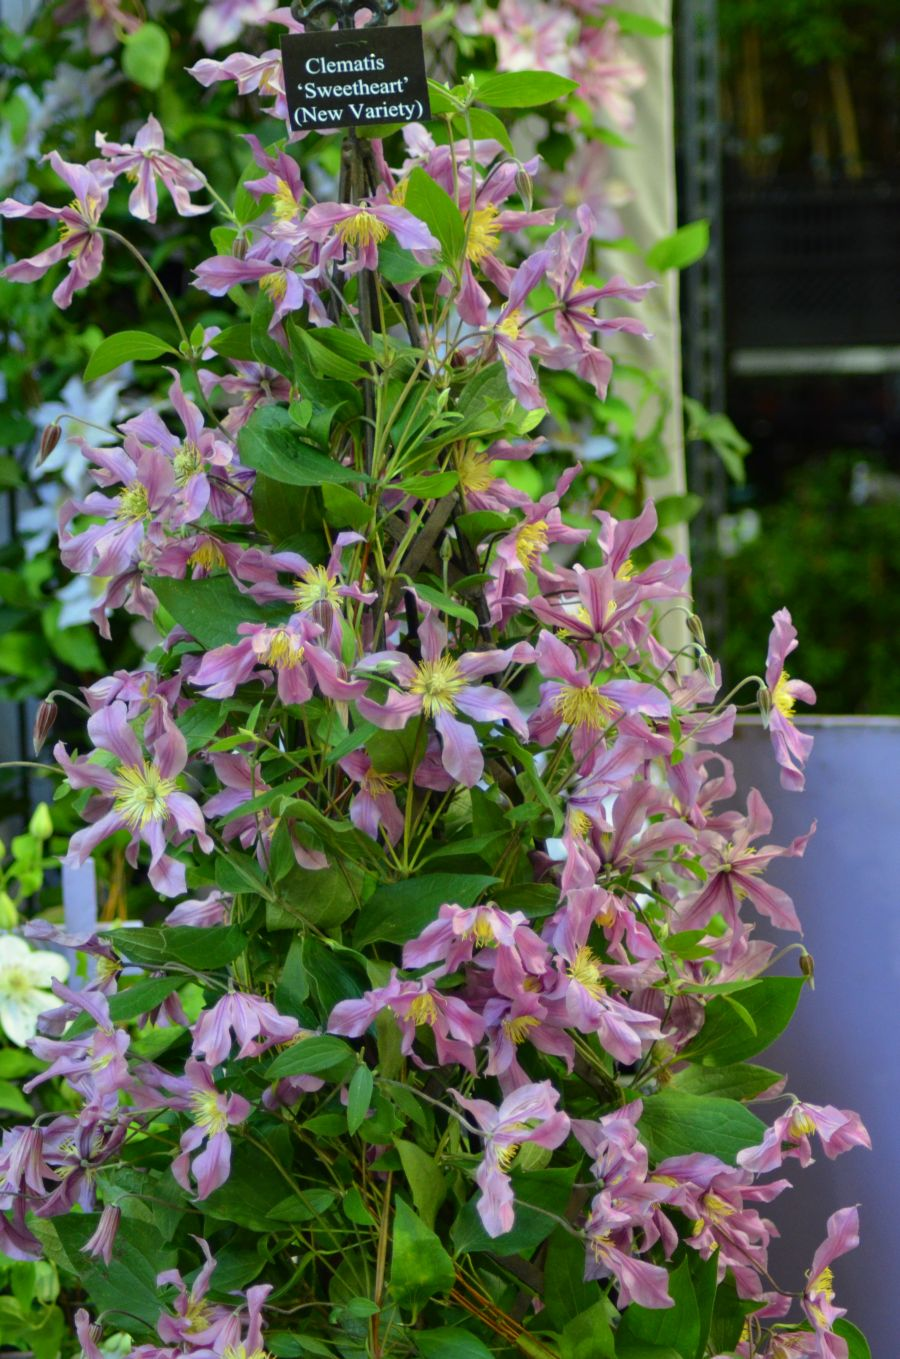 Clematis Sweetheart full pot